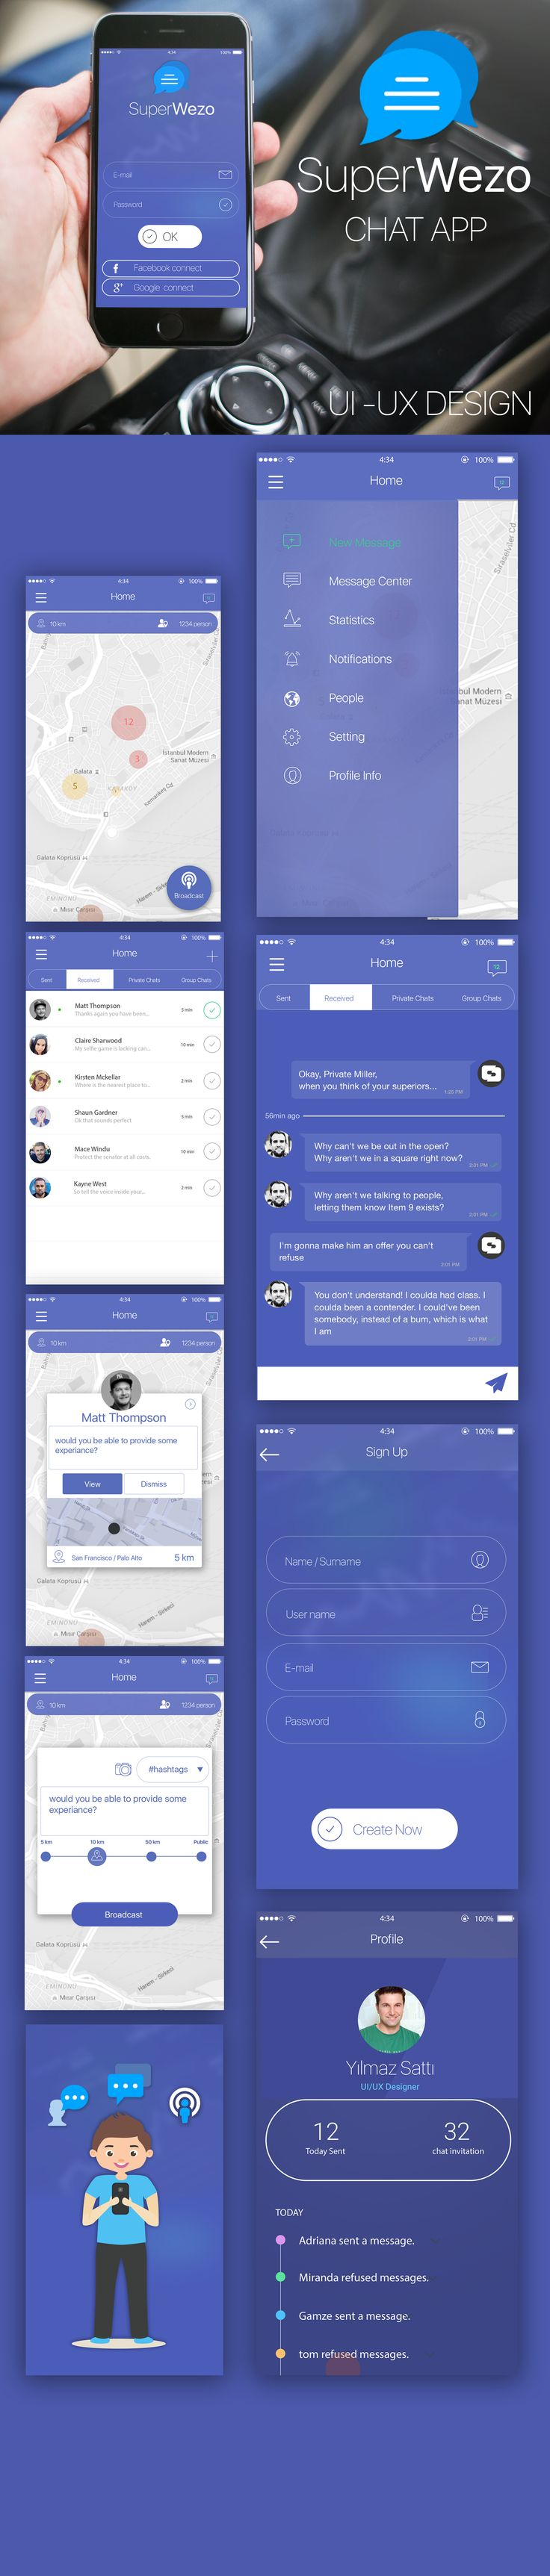 "@Behance projeme göz atın: ""SuperWezeo Chat App UI UX"" https://www.behance.net/gallery/45689155/SuperWezeo-Chat-App-UI-UX"